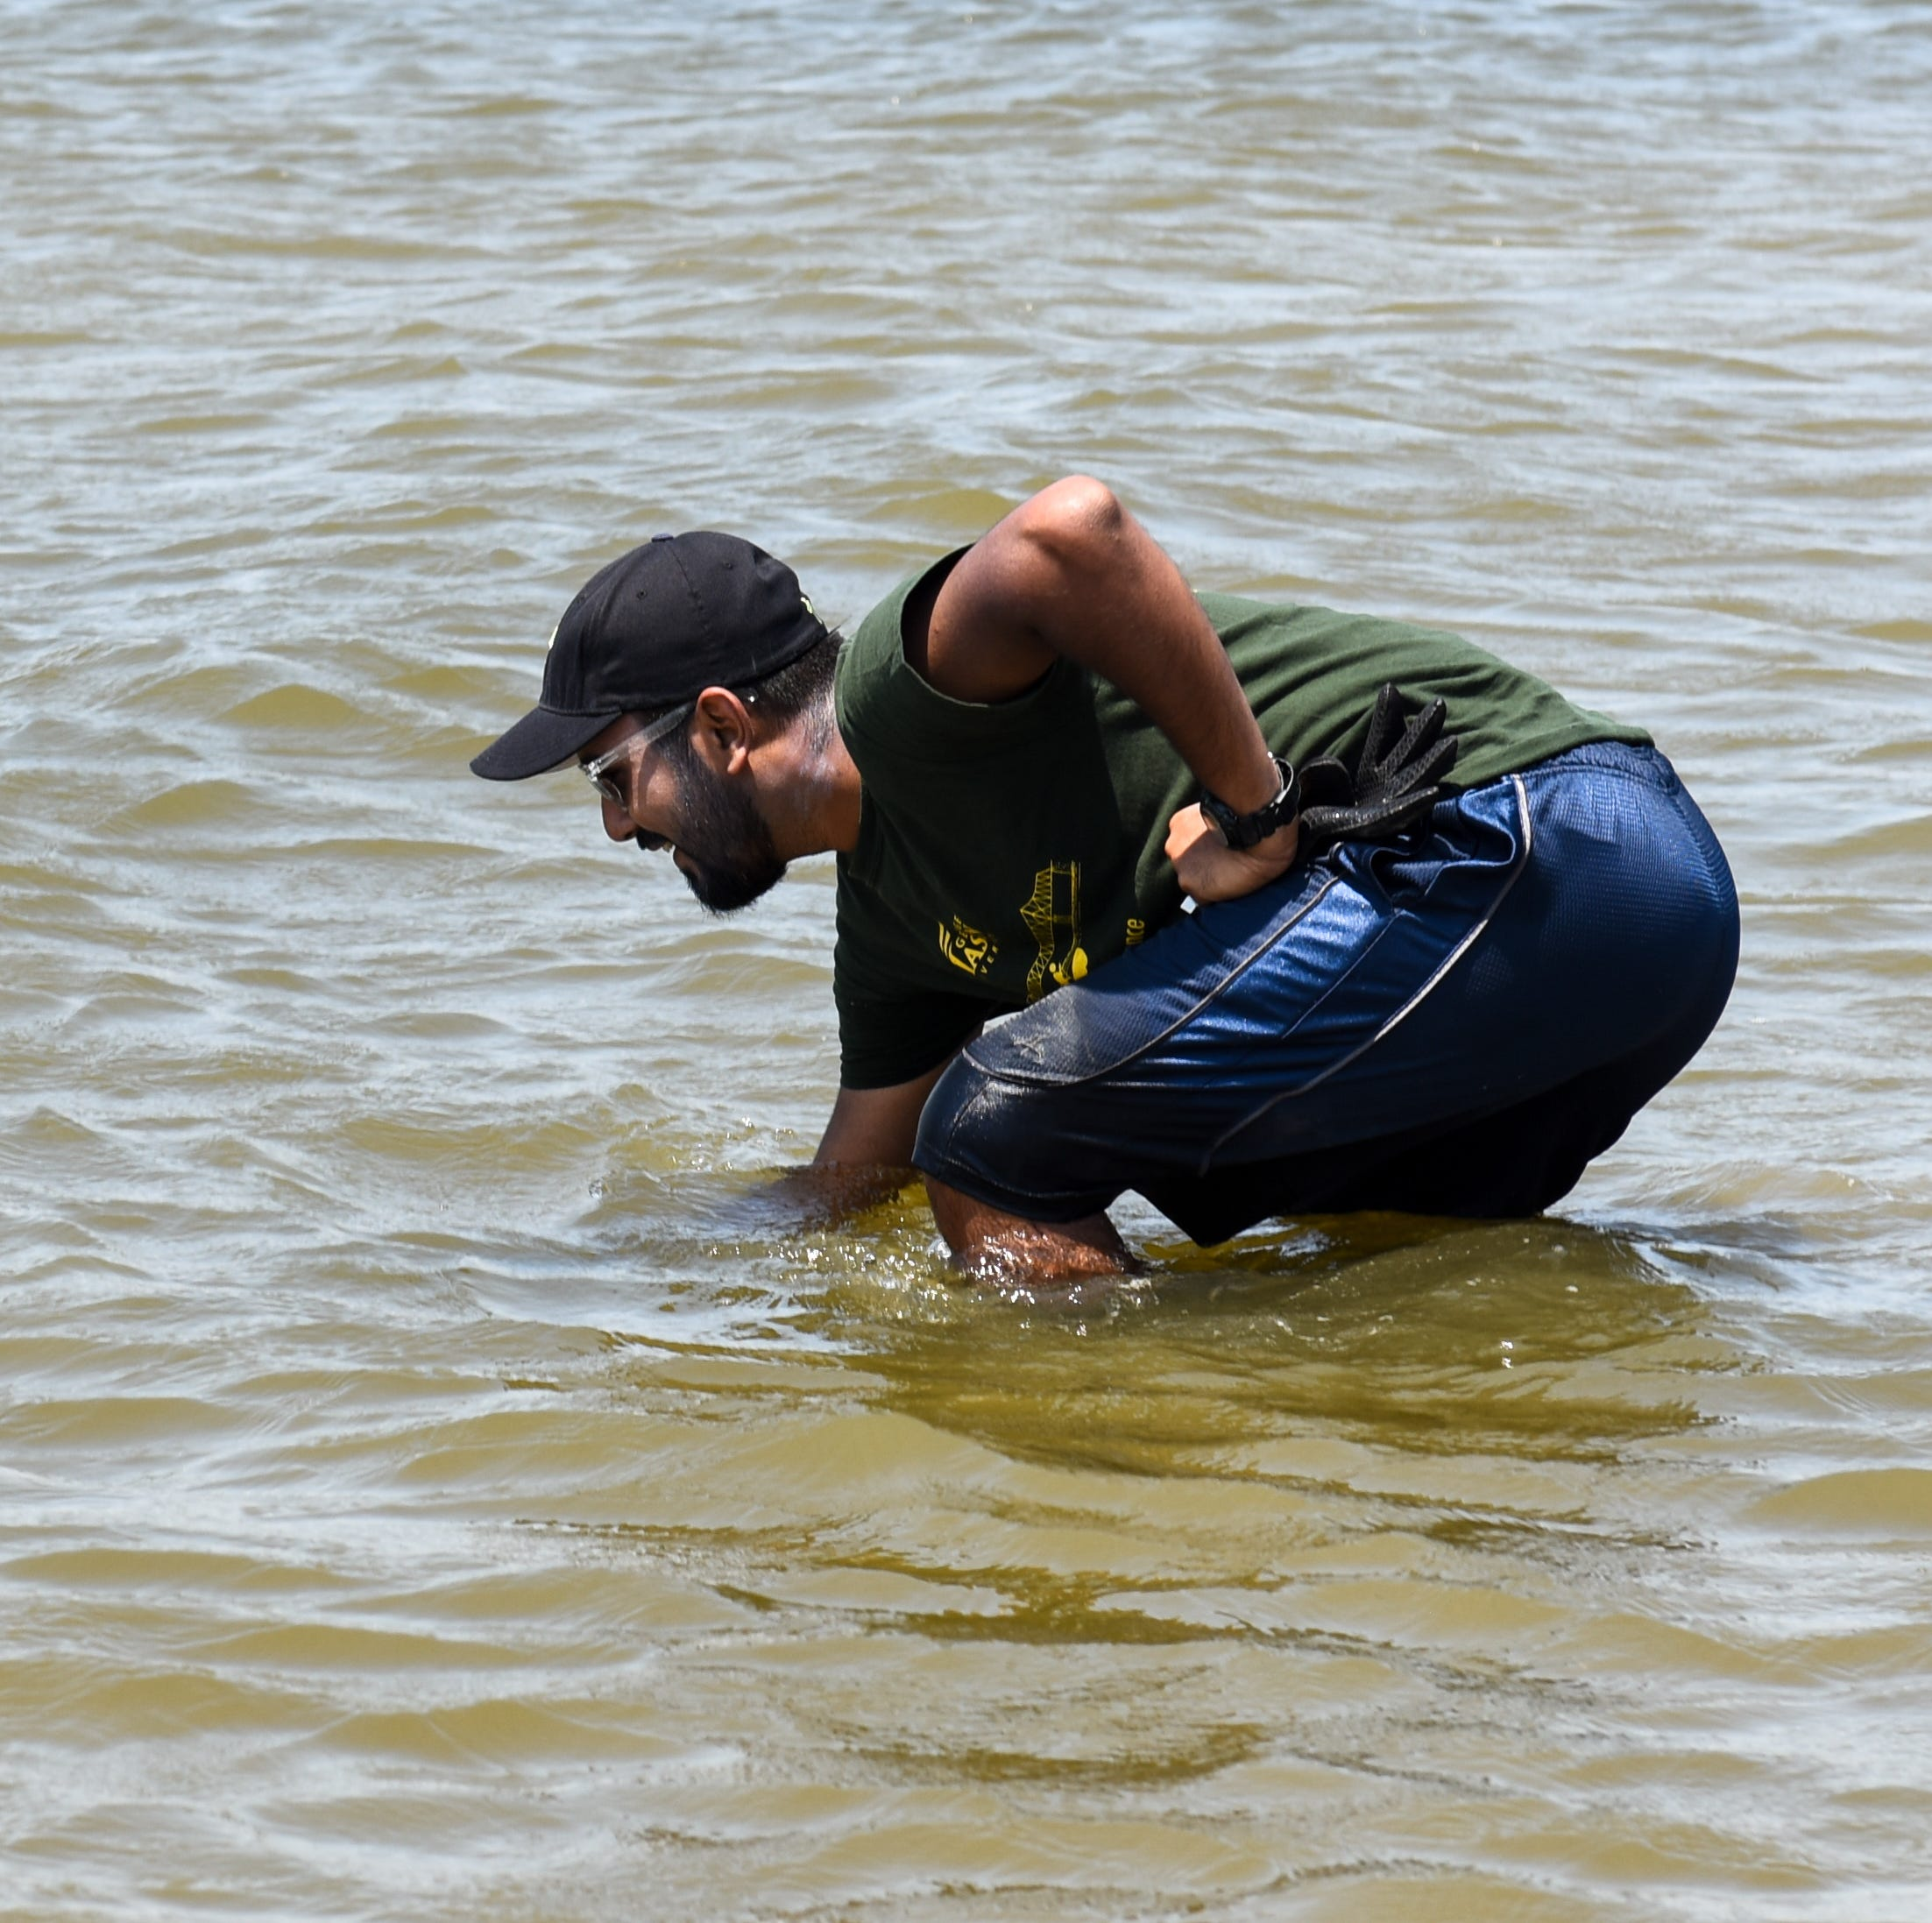 Civil engineering Ph.D candidate Ali Rezaie searches for a wave monitor that the George Mason University research team has planted to monitor wave energy in the area on Tuesday, July 17.